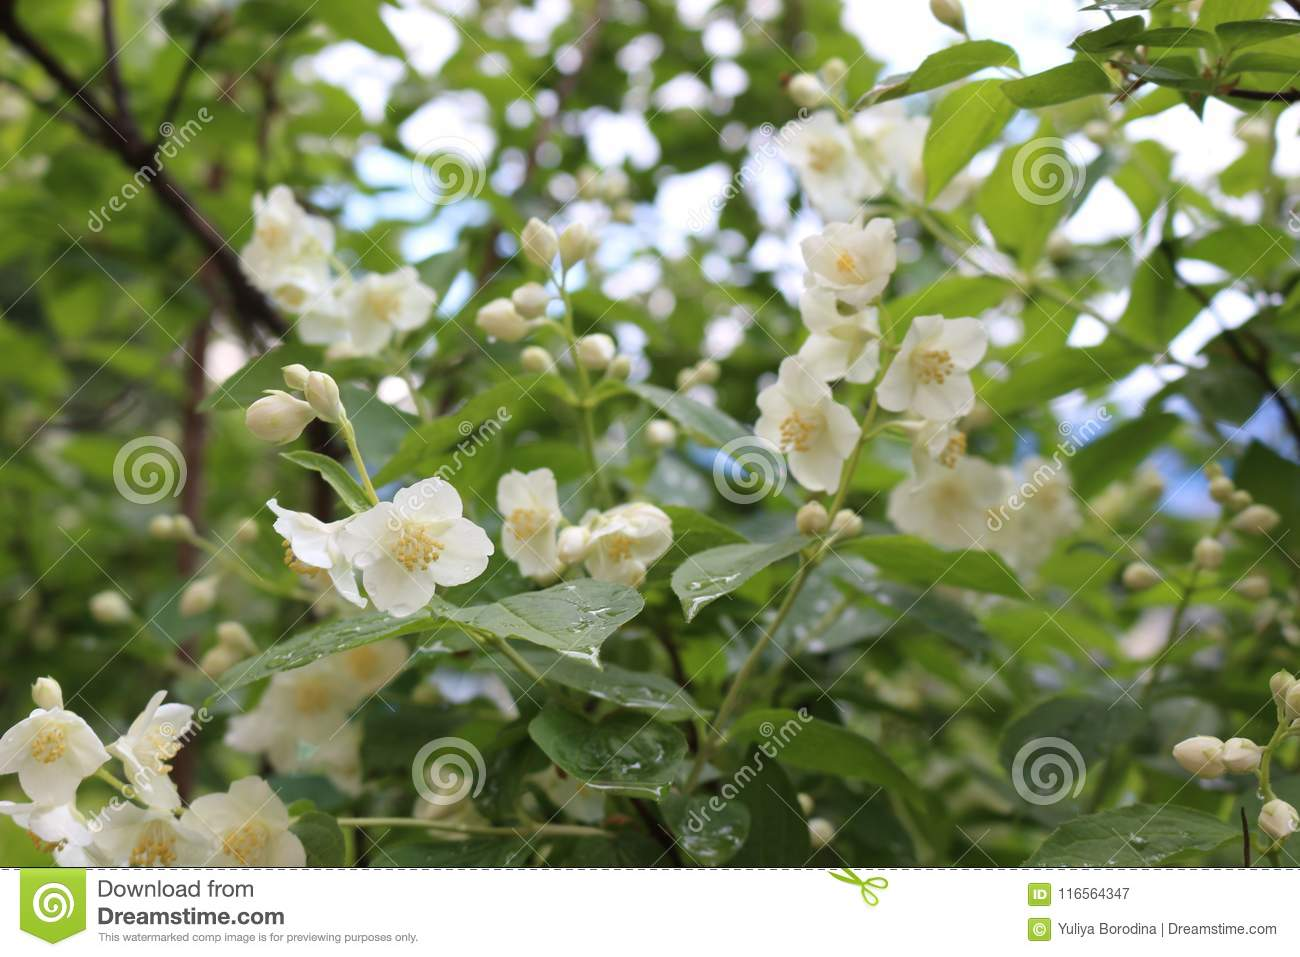 The Bush Of Jasmine Blossomed With White Fragrant Small Flowers